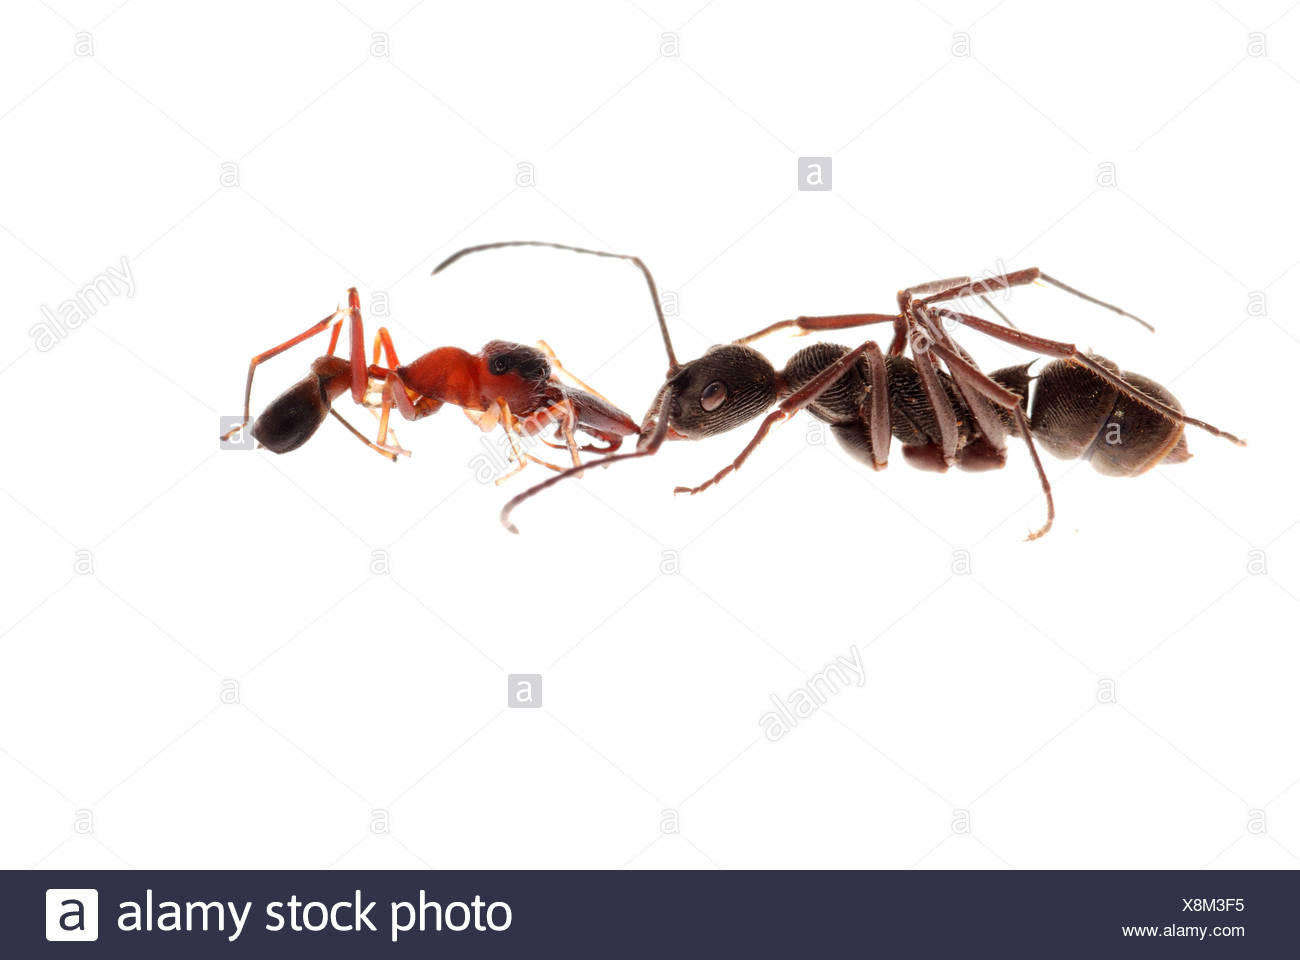 ant and ant mimic spider - Stock Image